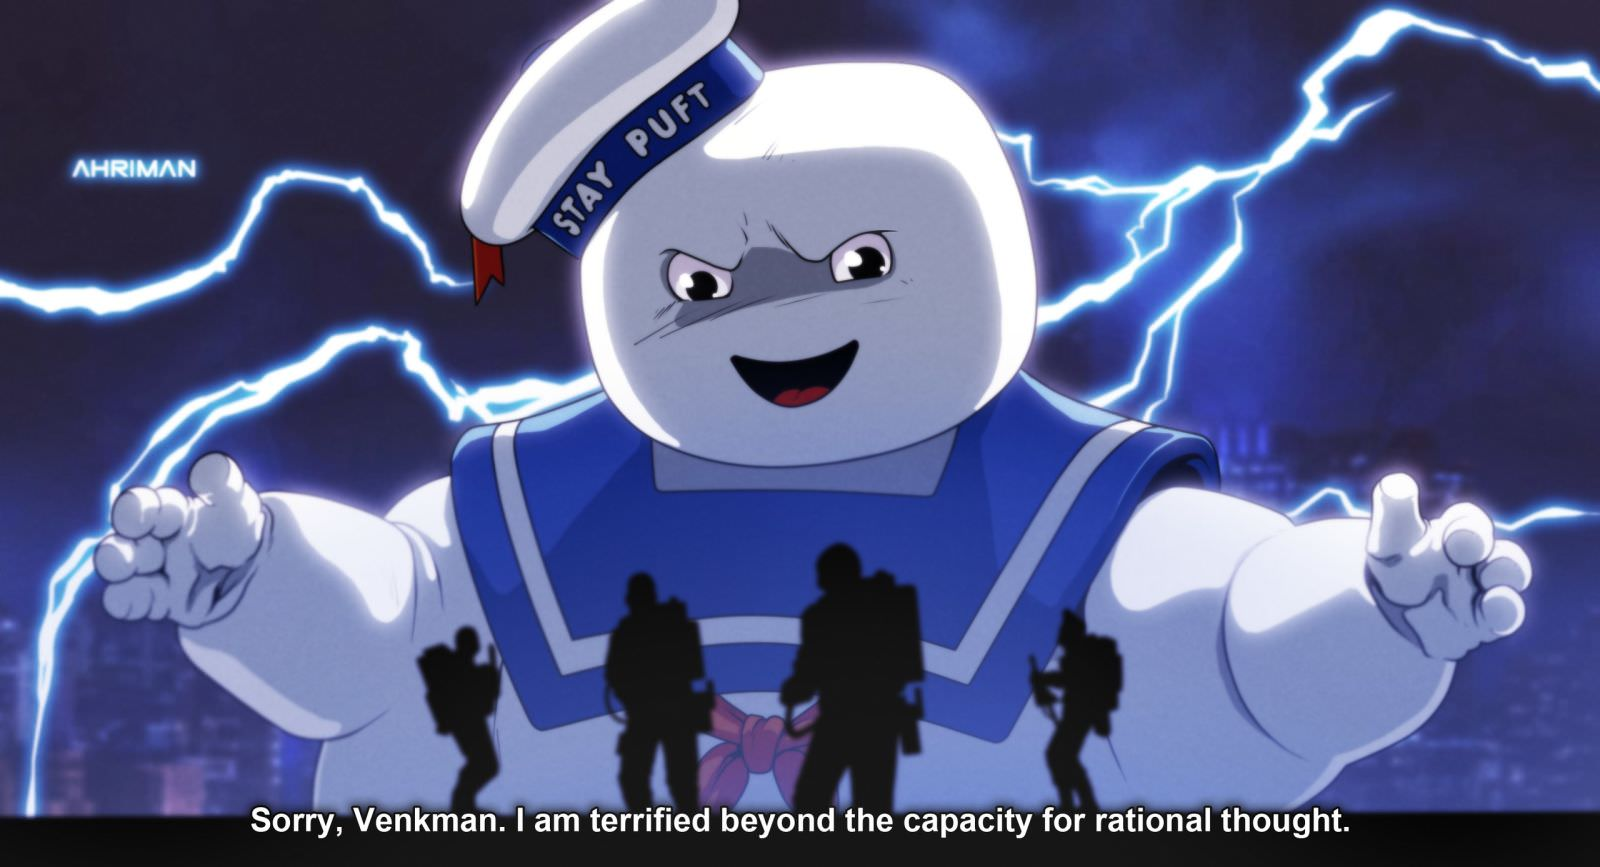 Ahriman GHOSTBUSTERS 3 - Must-See Art: Ahriman Turns Classic Flicks Into Anime!